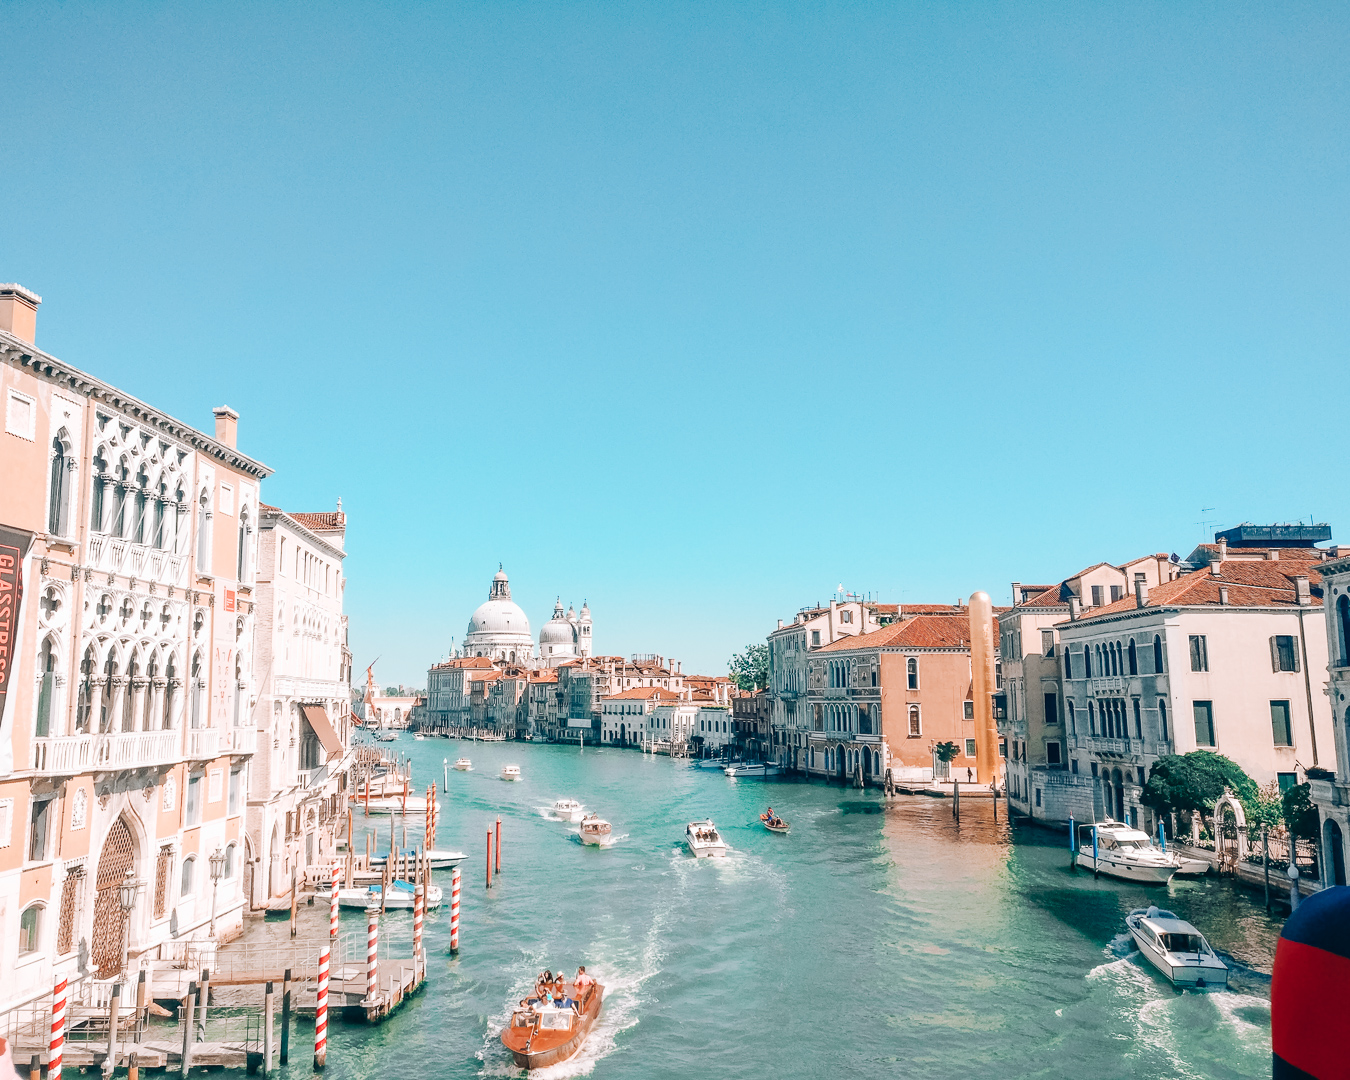 View the Grand Canal and buildings in Venice